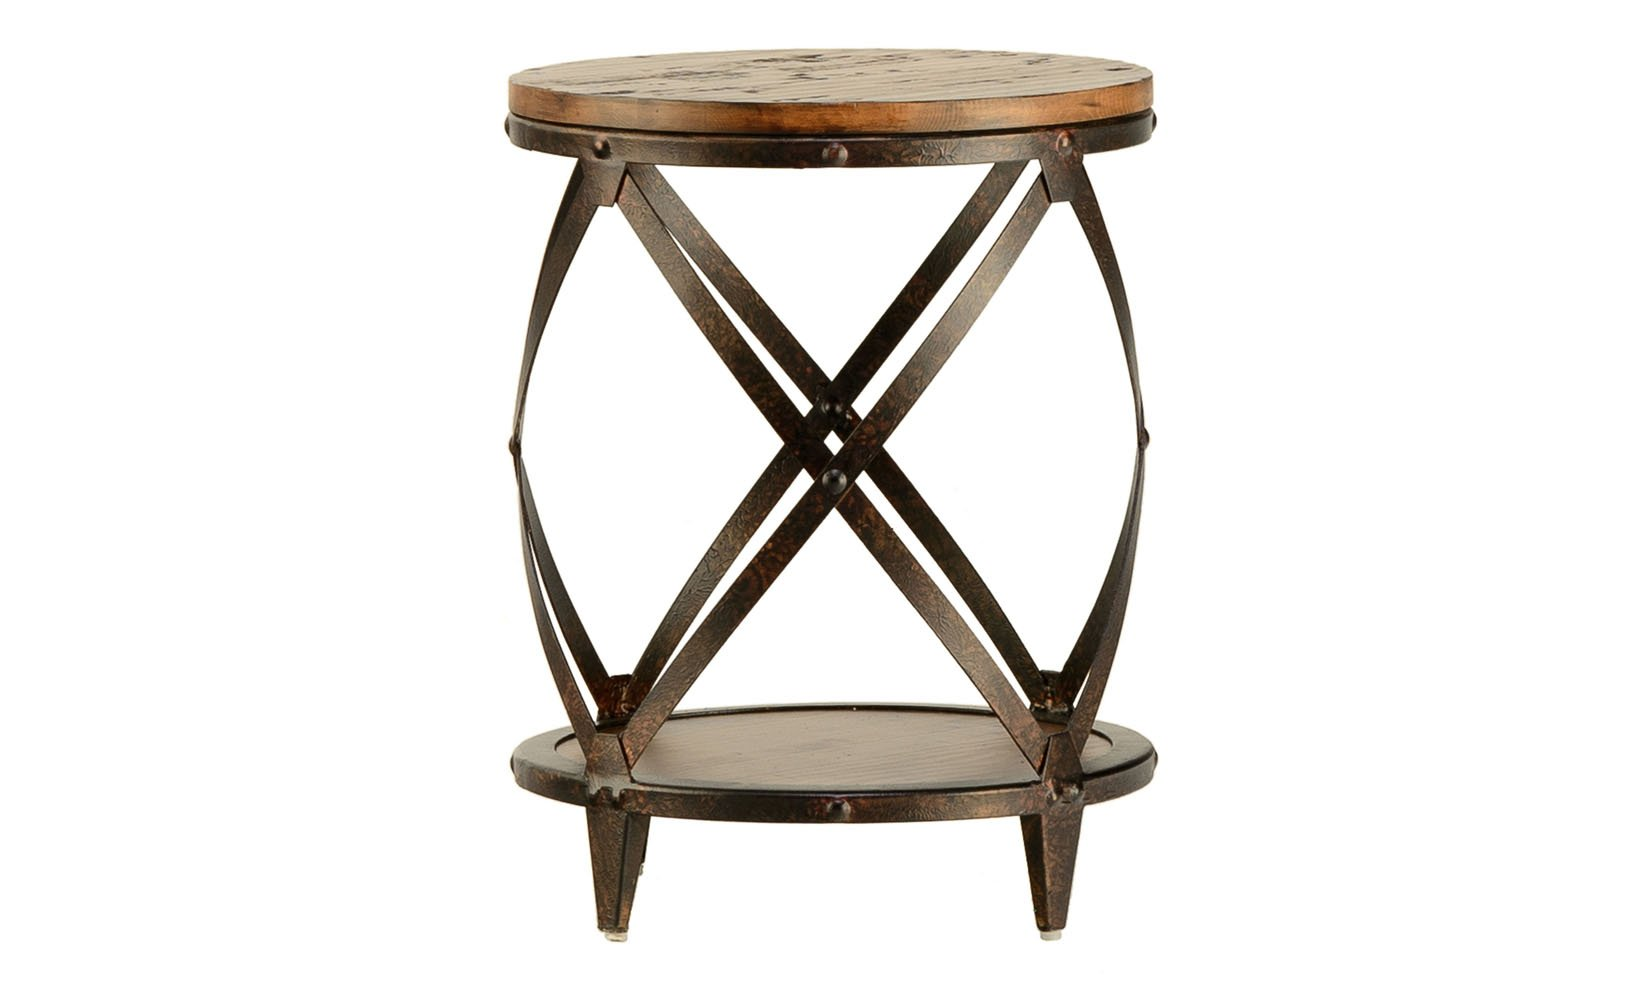 pinebrook round end table schneiderman furniture minneapolis accent paul with bbq built small wheels ikea ashley leather sofa unique wine racks antique low metal console garden